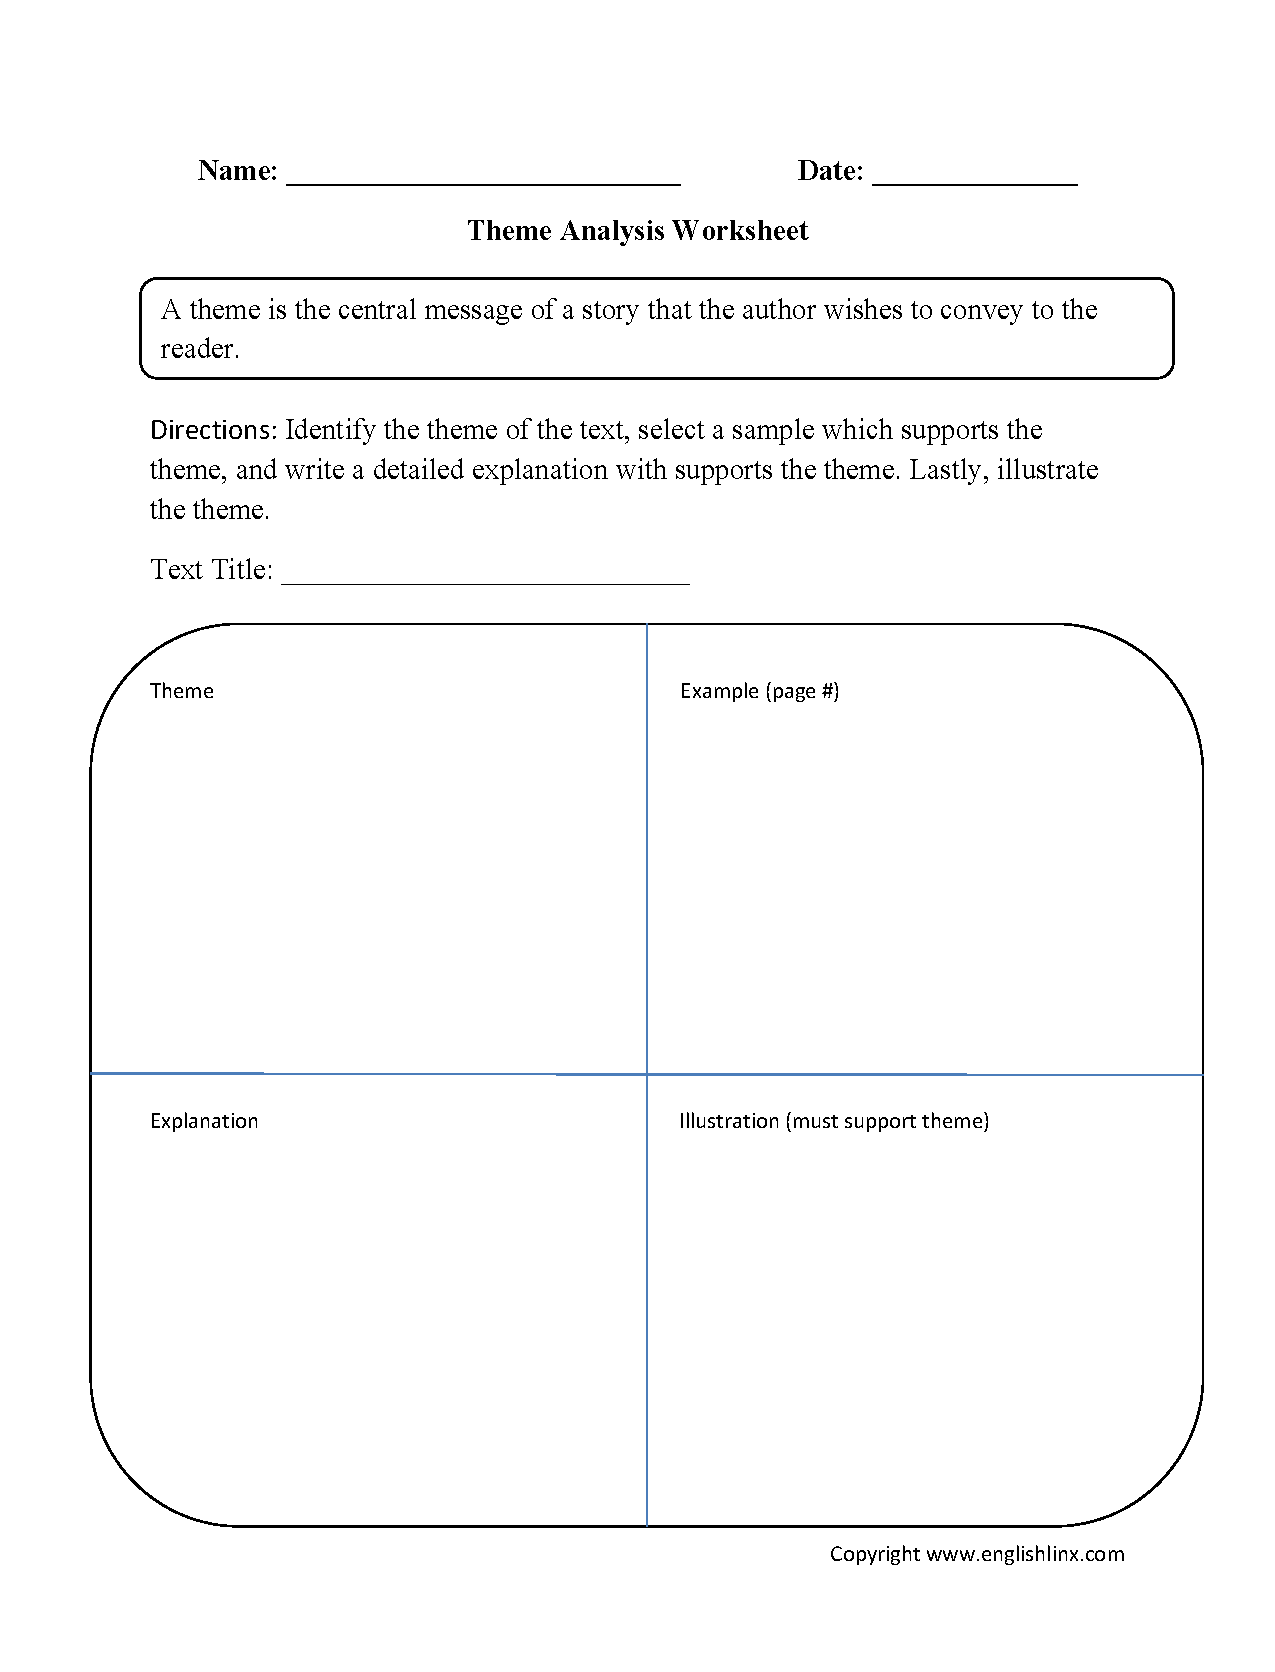 Worksheets Worksheet On Theme englishlinx com theme worksheets analysis worksheet